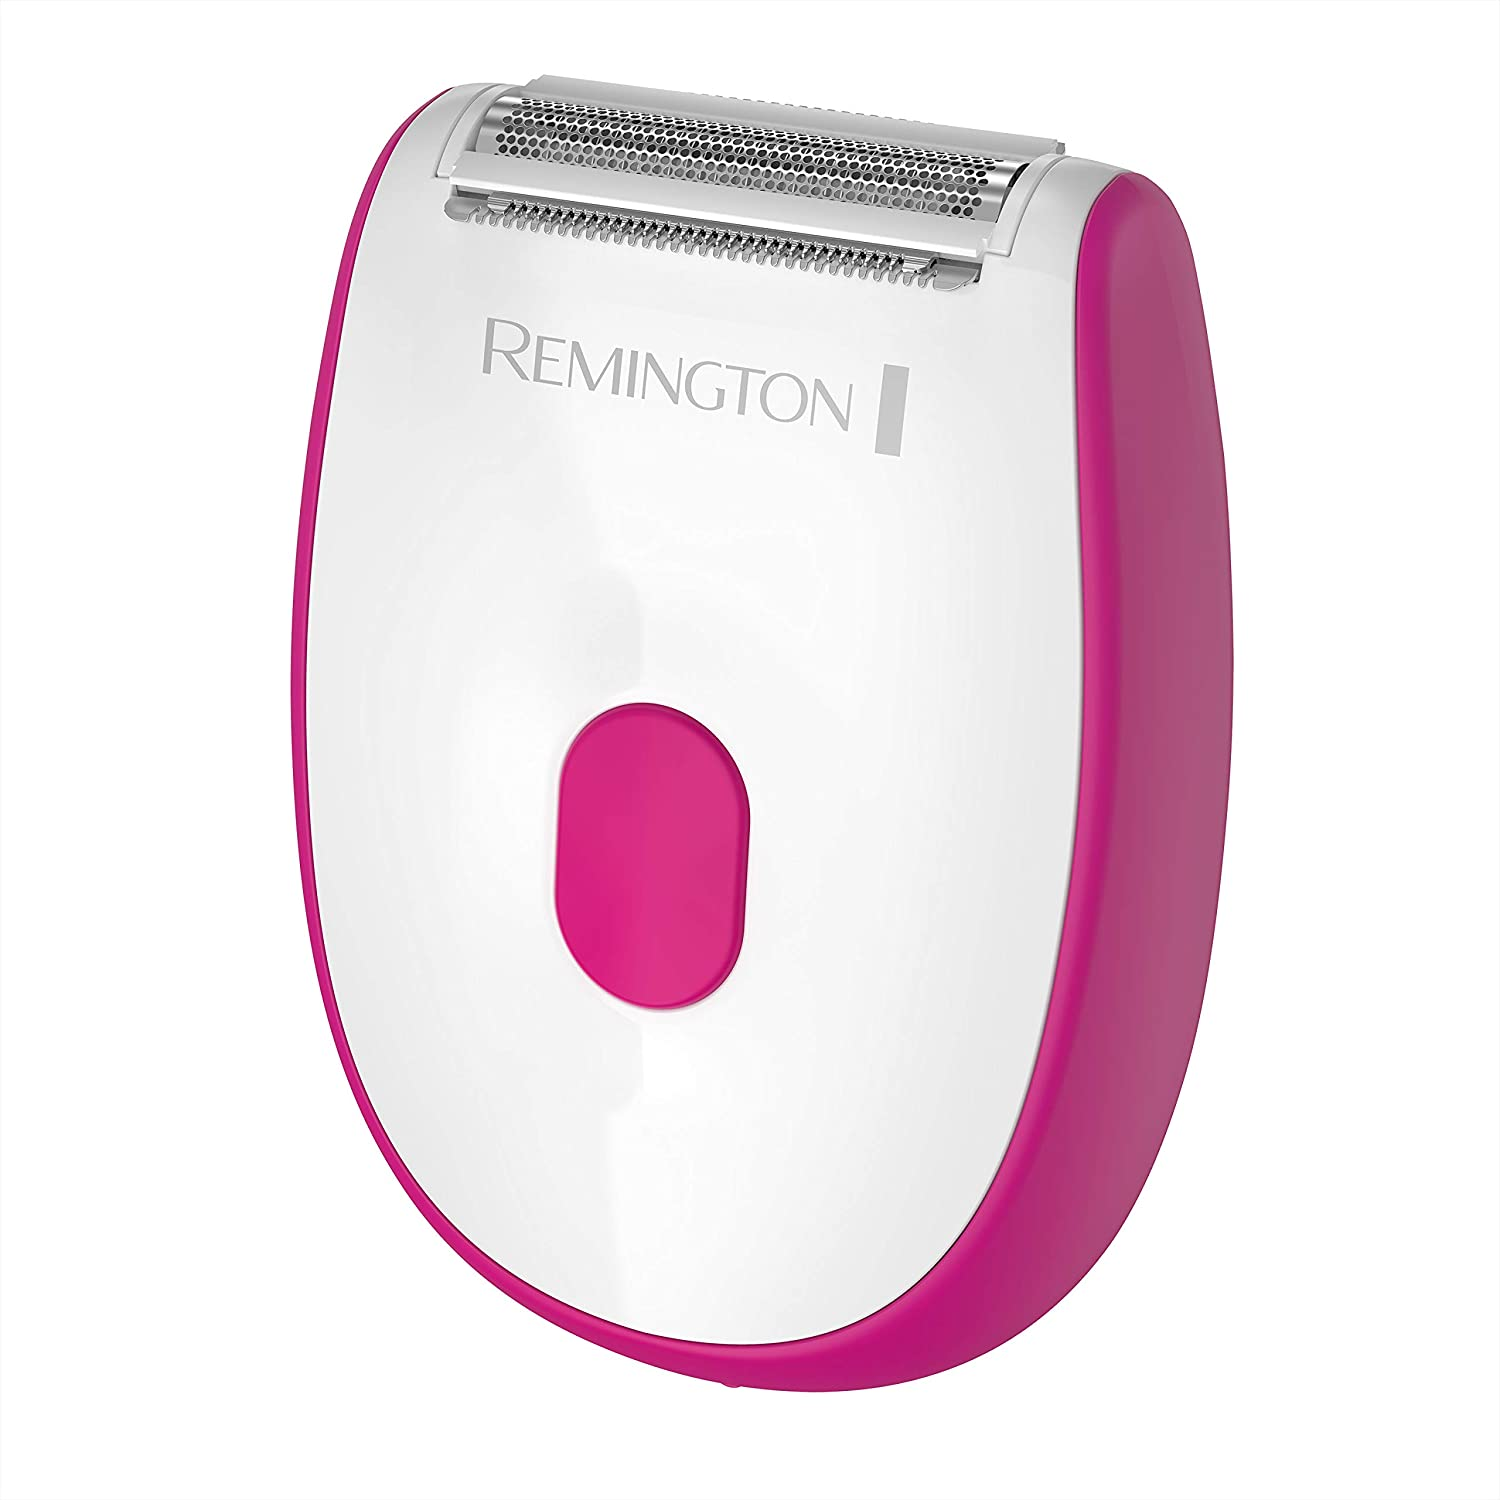 Remington WSF4810US Smooth & Silky Electric Shaver